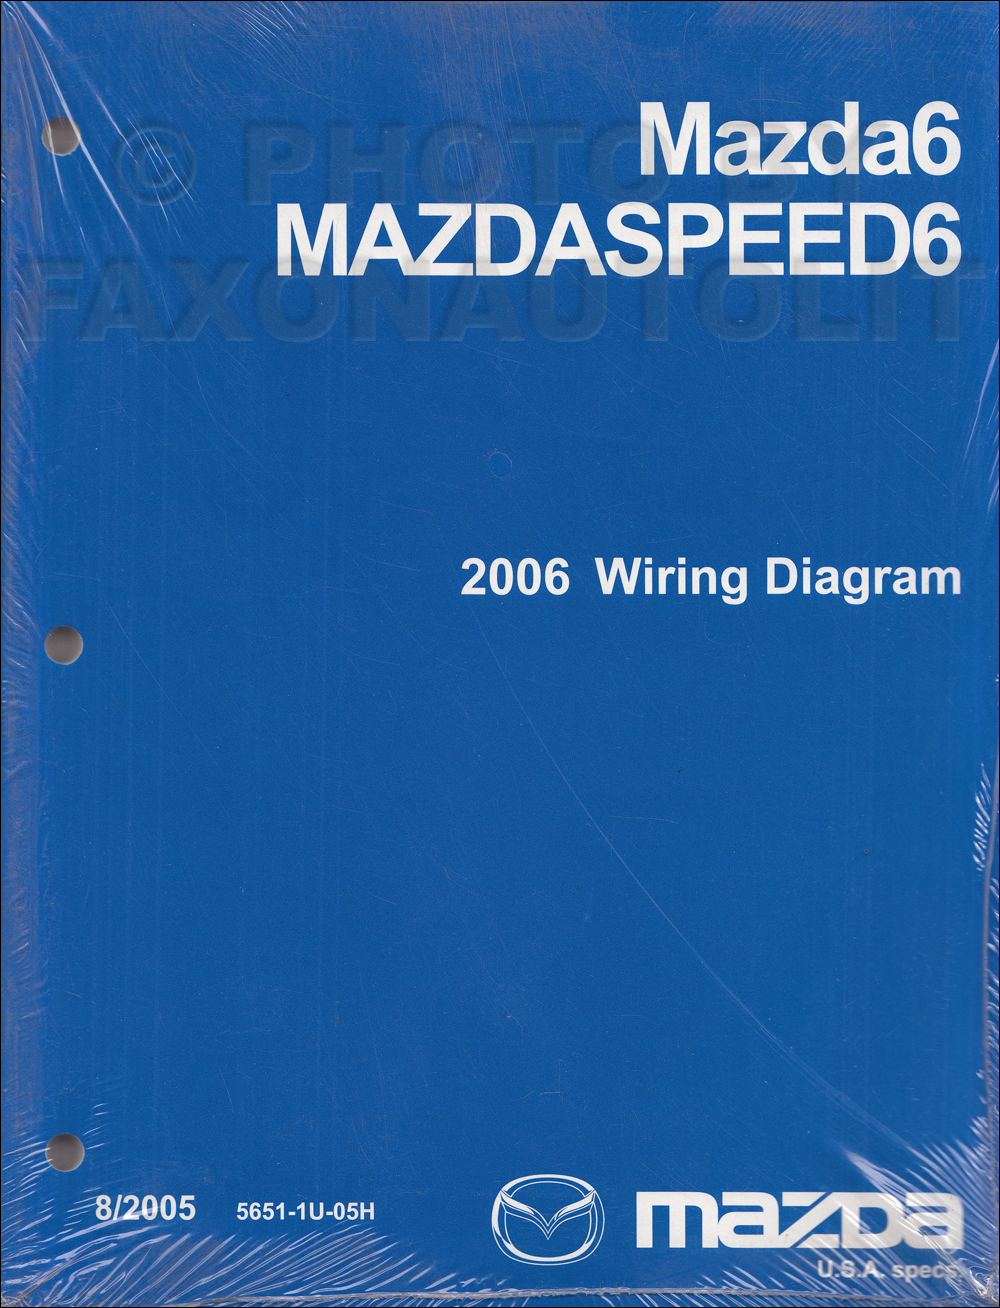 2006 mazda 6 original wiring diagram 2006 mazda 6 power window wiring diagram mazda 6 wiring diagram 2006 #45